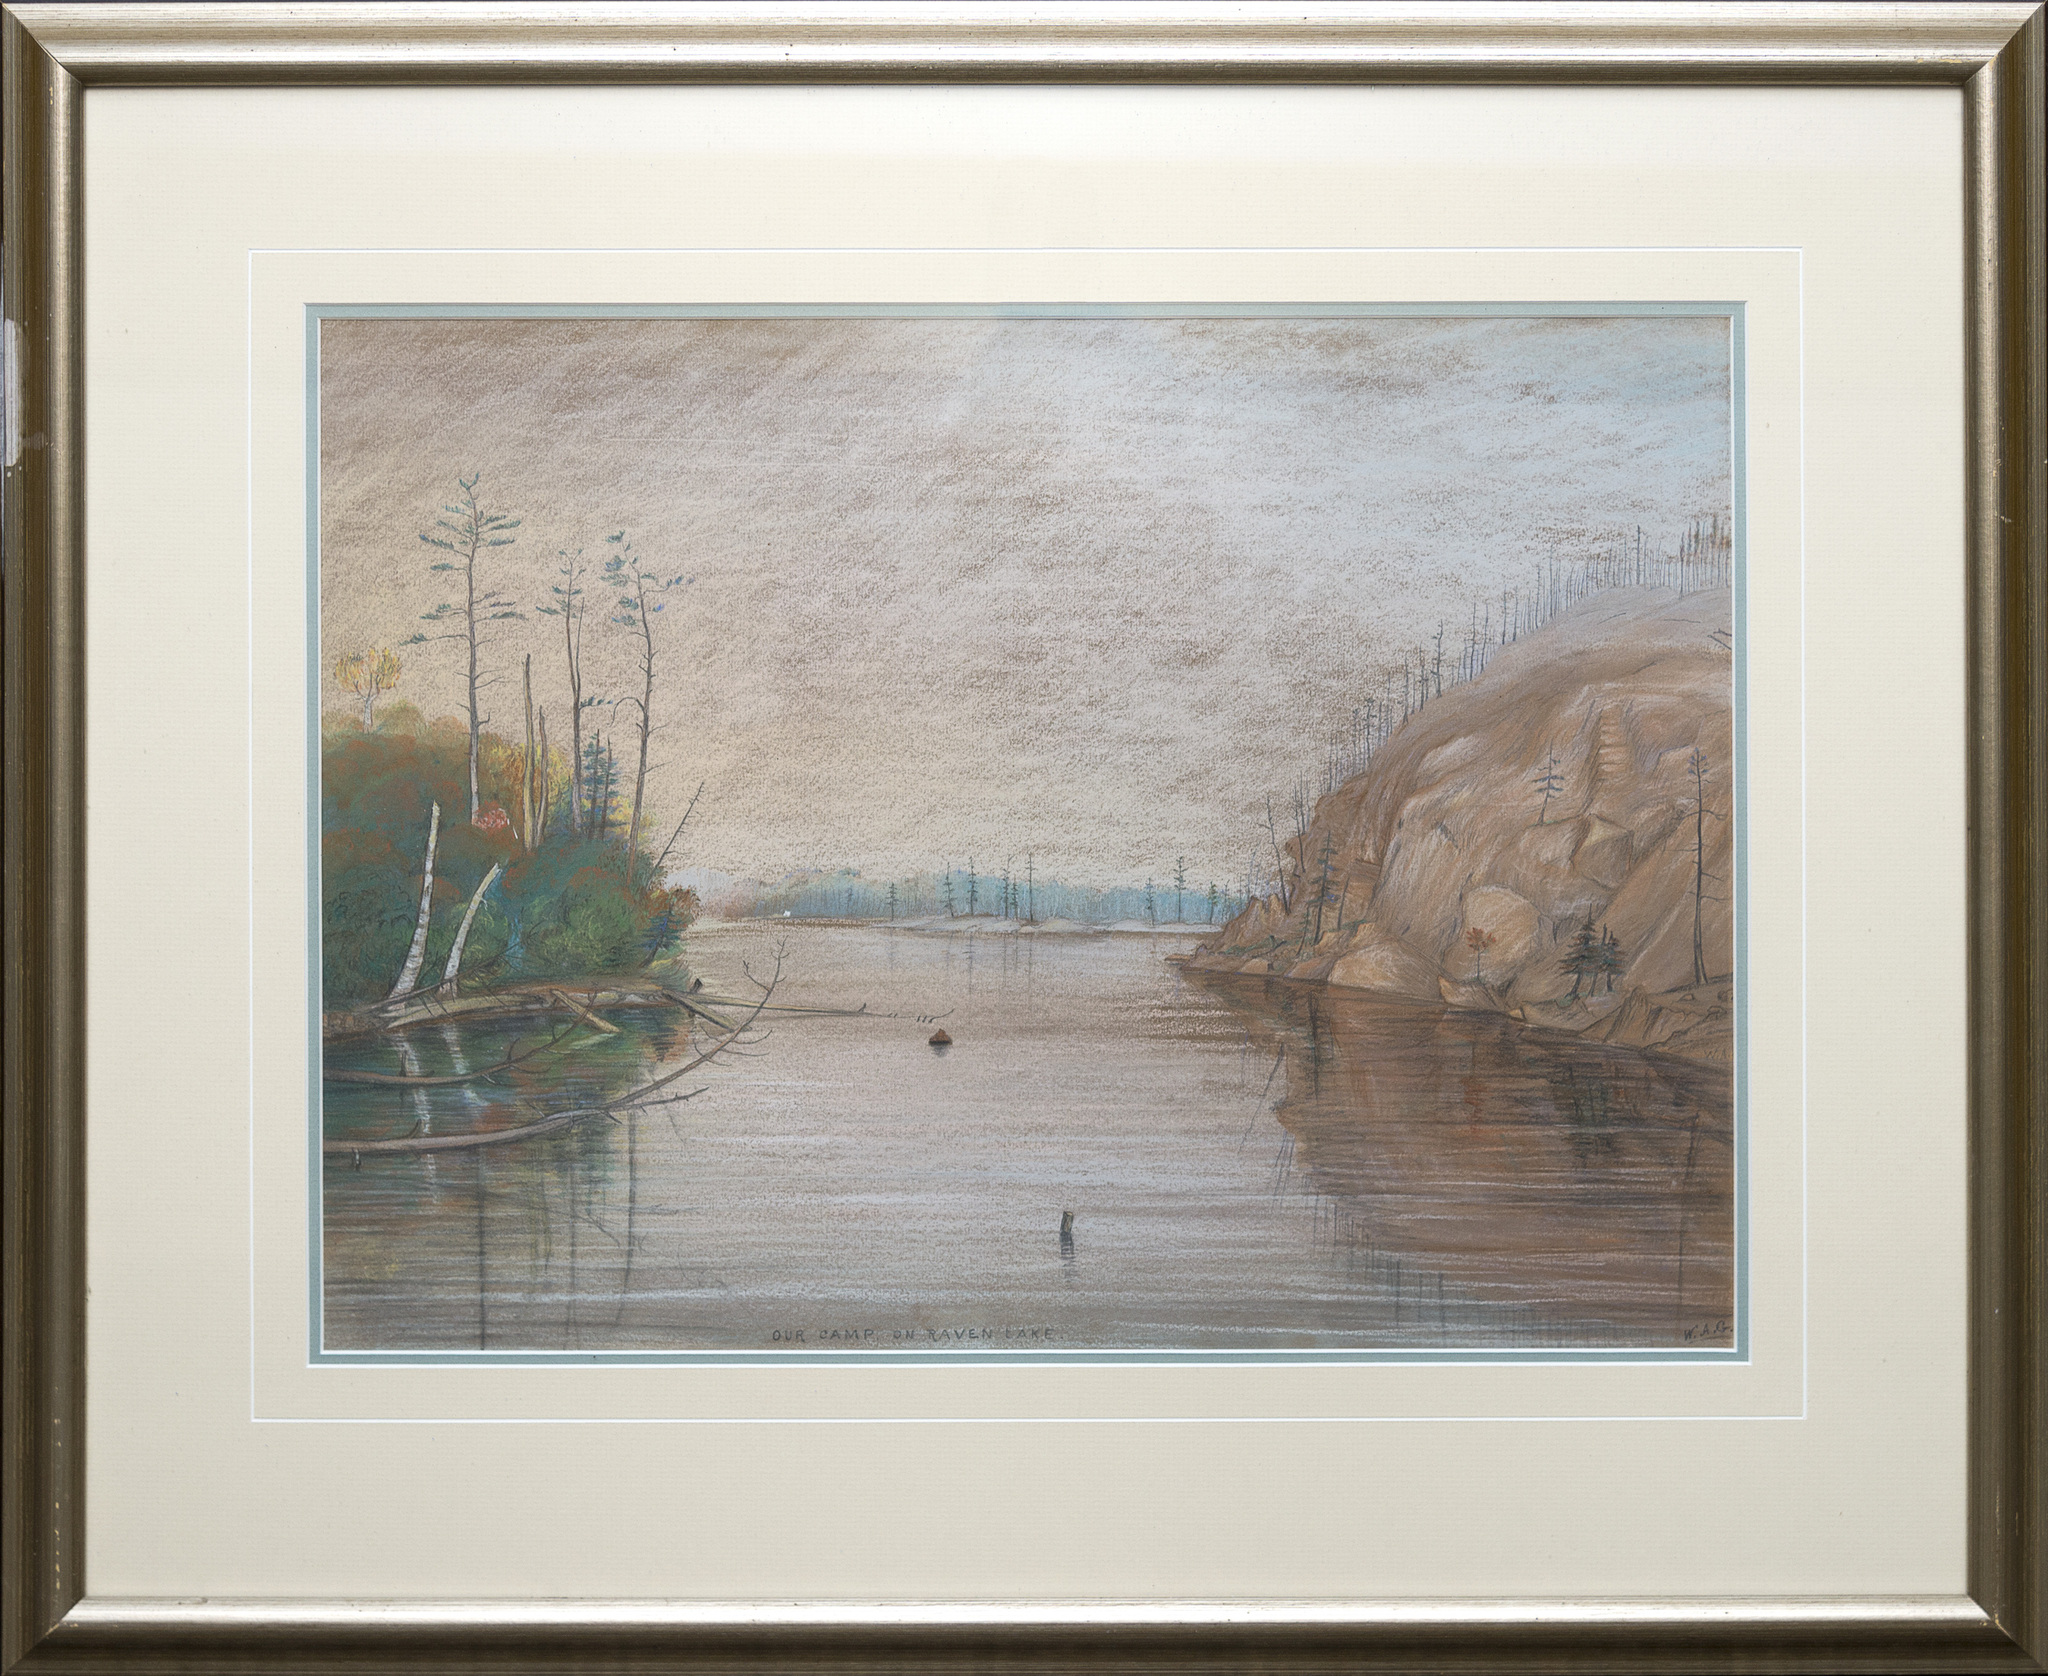 Pastel drawing of lake scene, bordered by trees and cliffs.